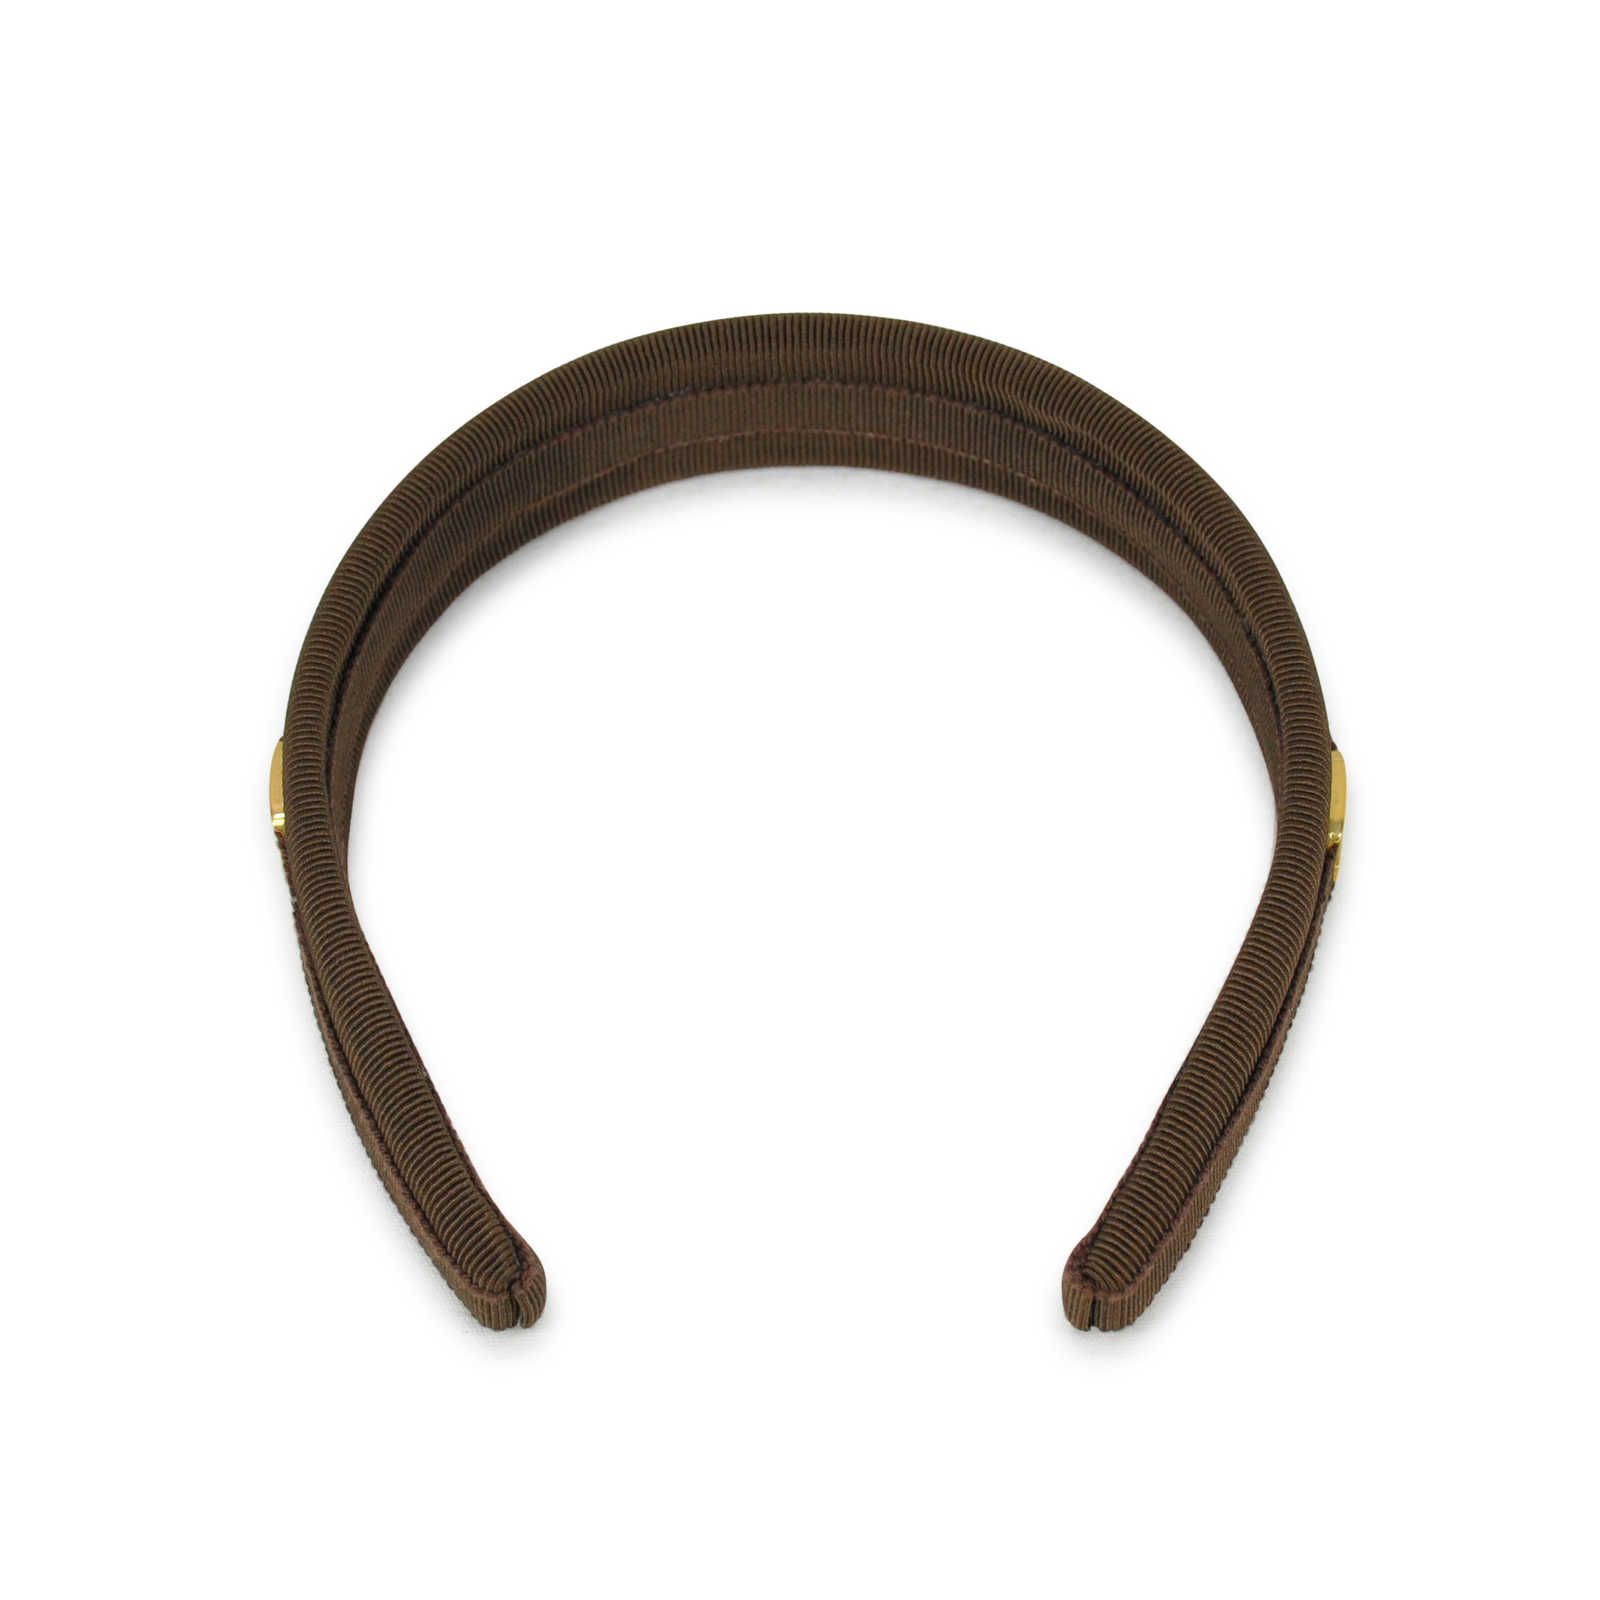 ... Authentic Second Hand Salvatore Ferragamo Logo Emblem Hairband  (PSS-304-00017) - 9ddc3db7568a5